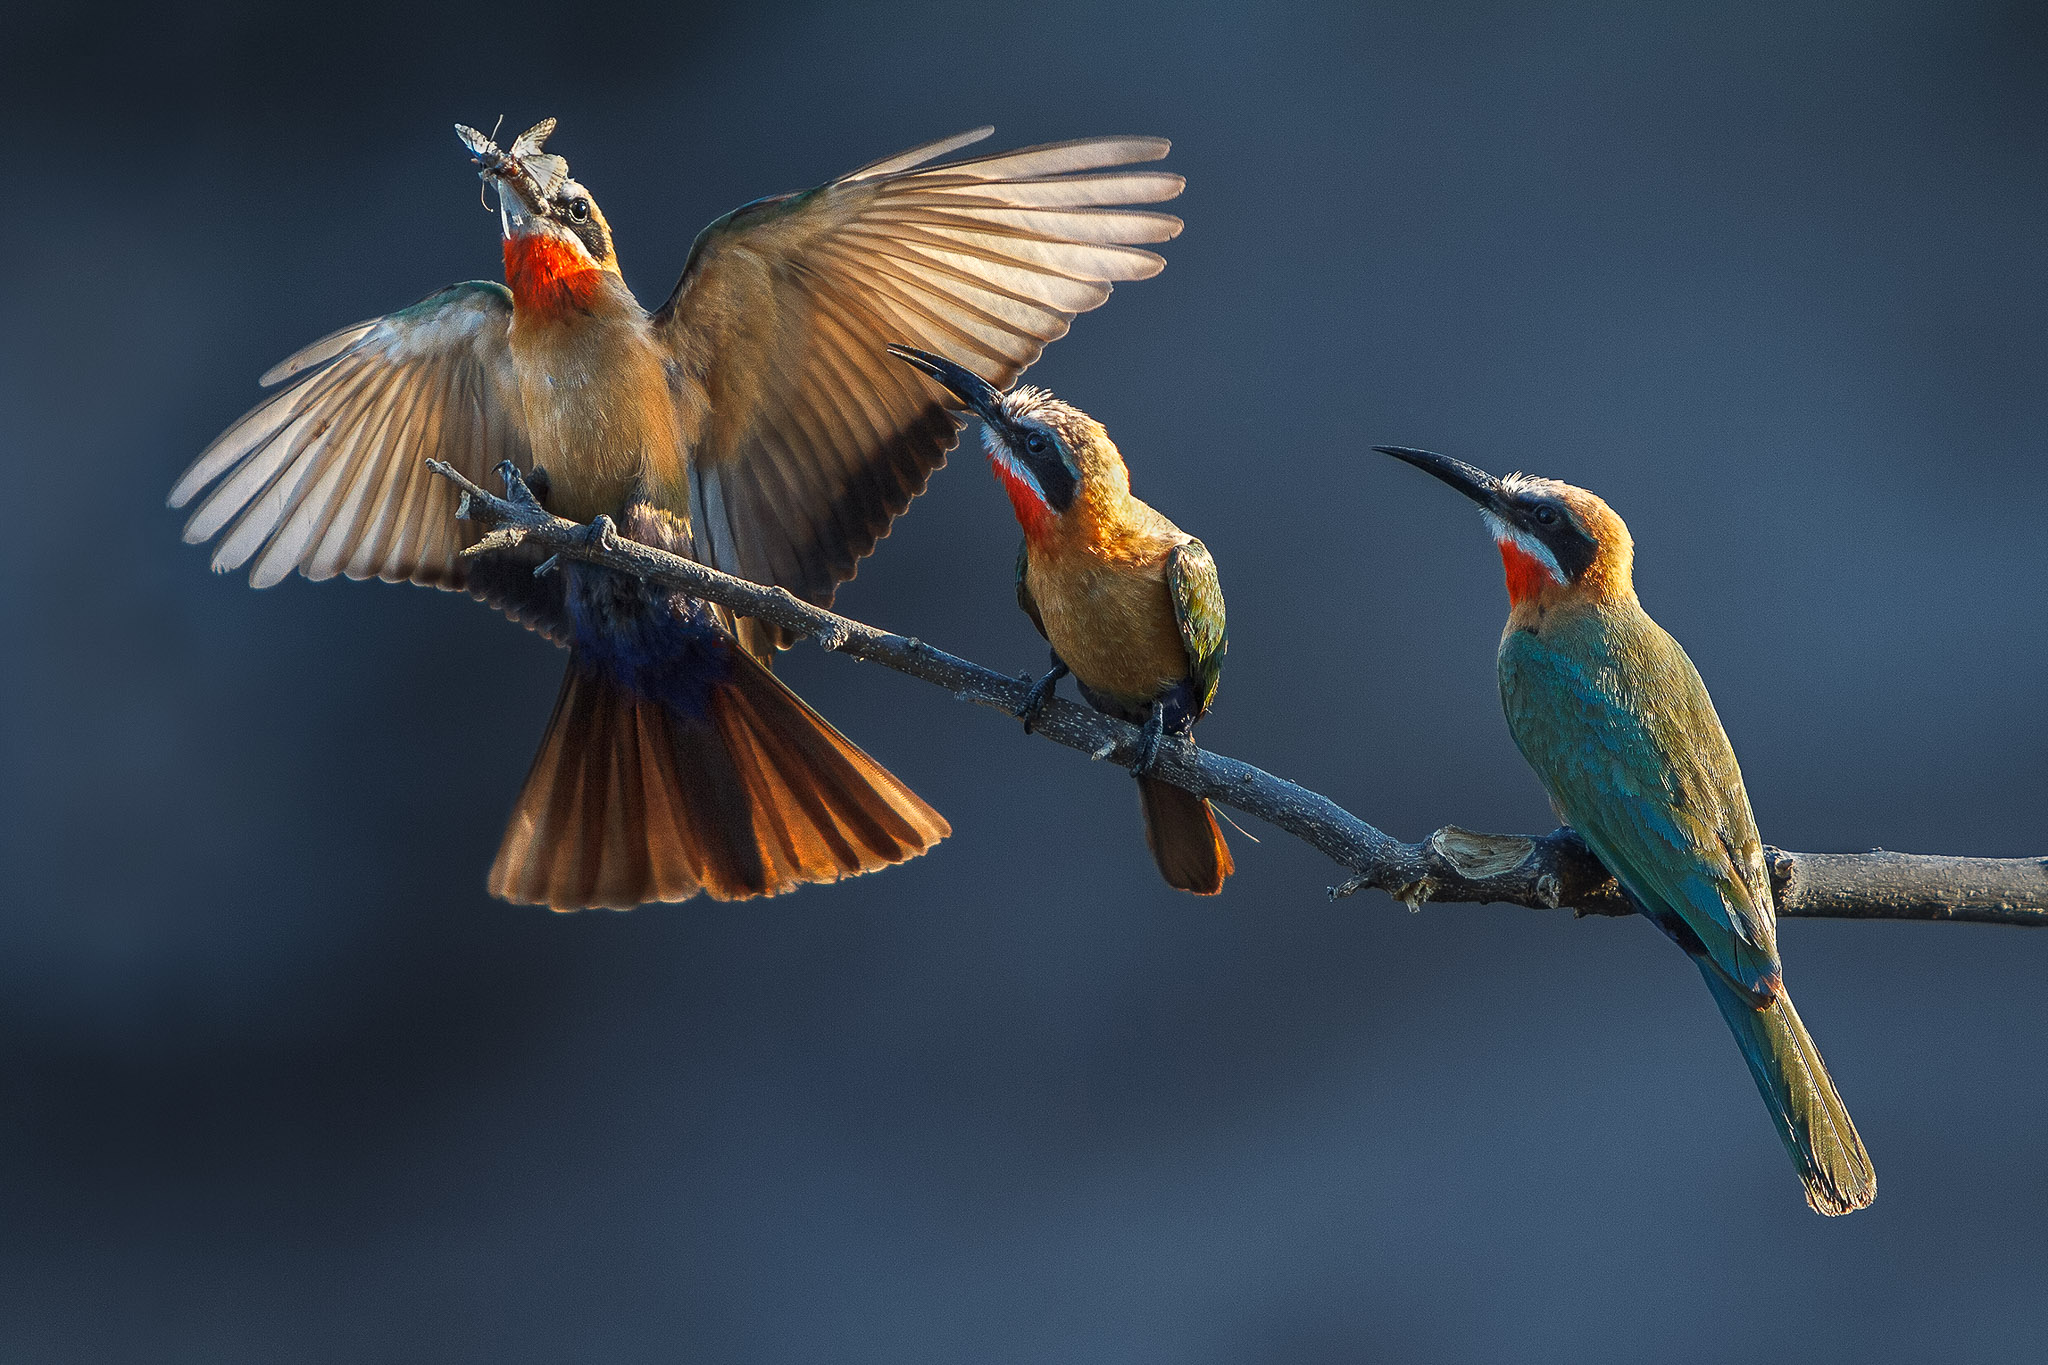 A white fronted bee eater lands on a branch with two other birds